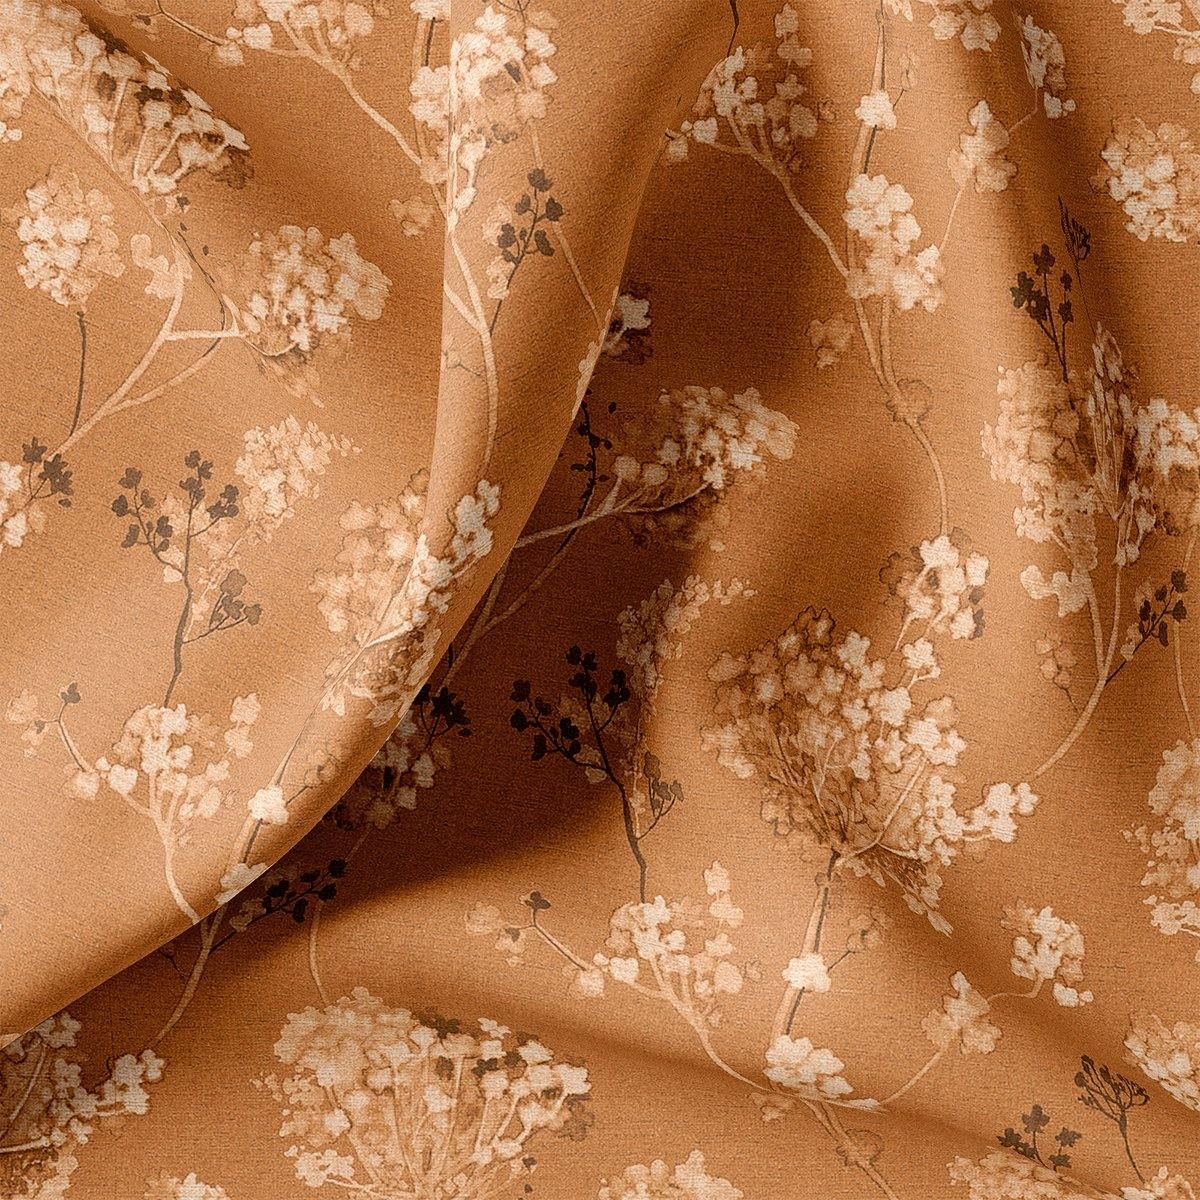 Brown Brush Painted Flower Digital Printed Fabric - FAB VOGUE Studio. Shop Fabric @ www.fabvoguestudio.com